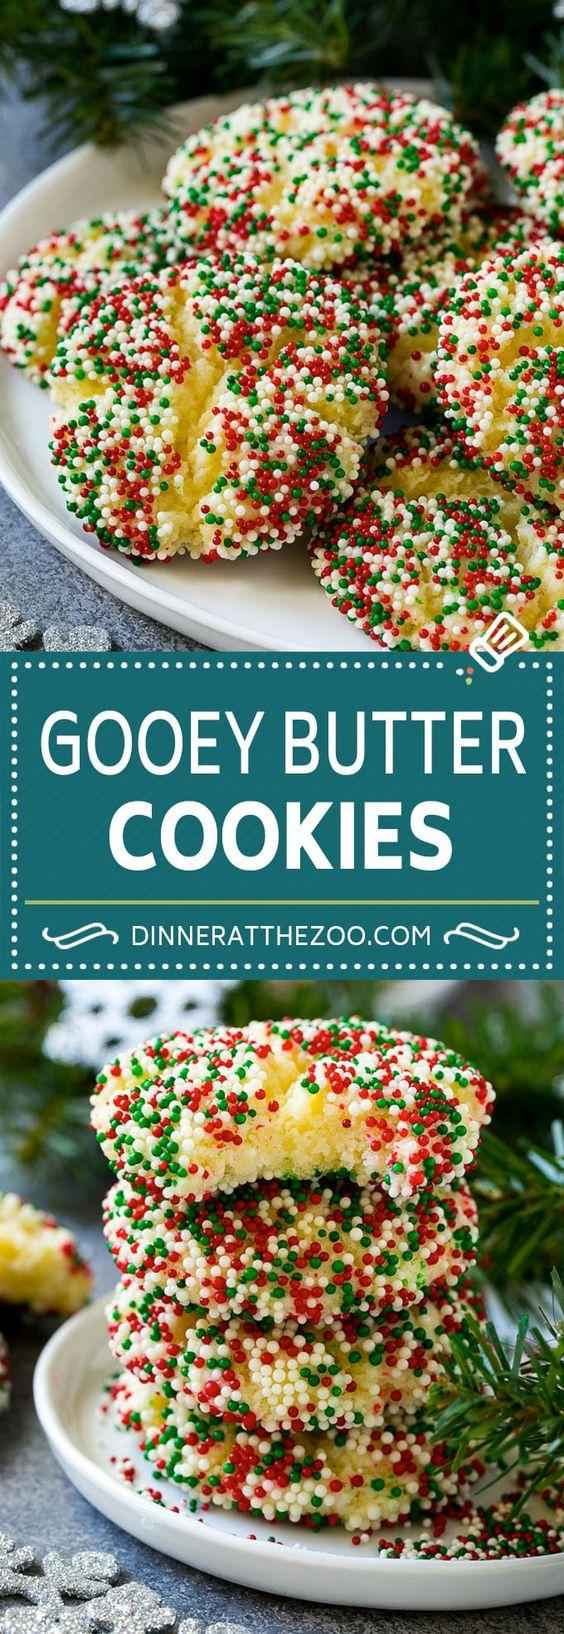 17 Gooey Butter Cookies Recipe